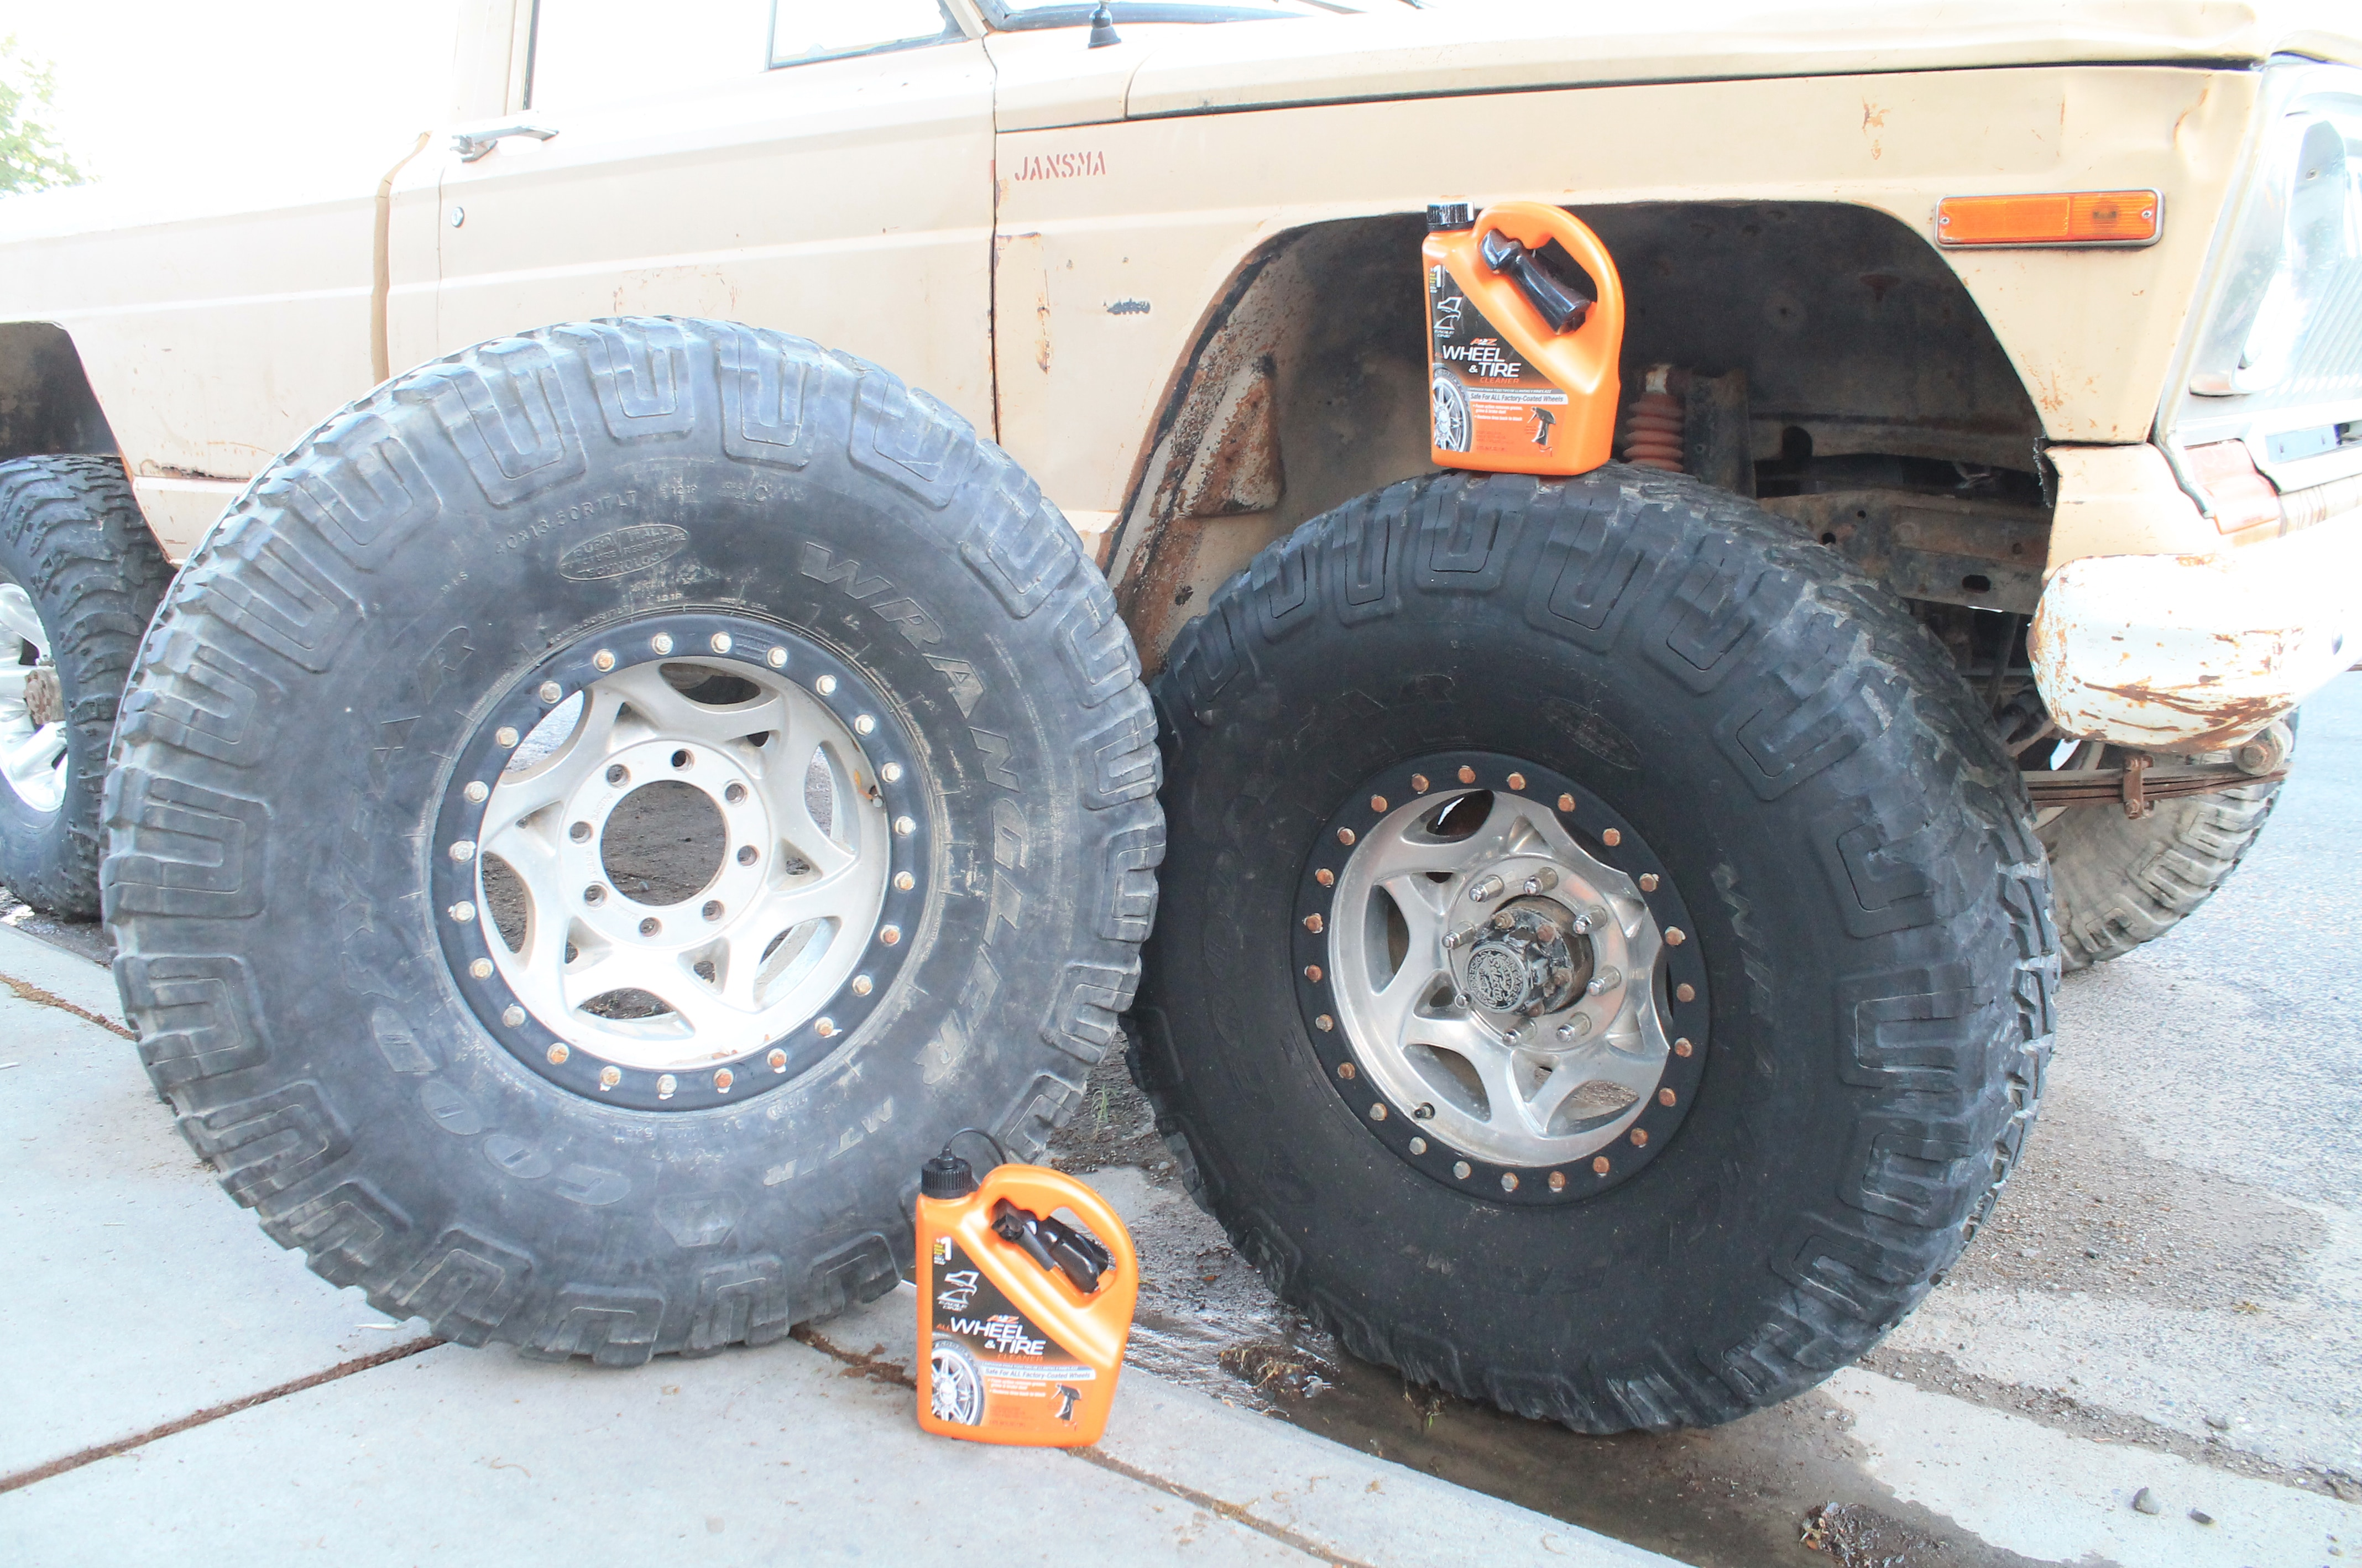 eagle one tire cleaner and jeep truck tires